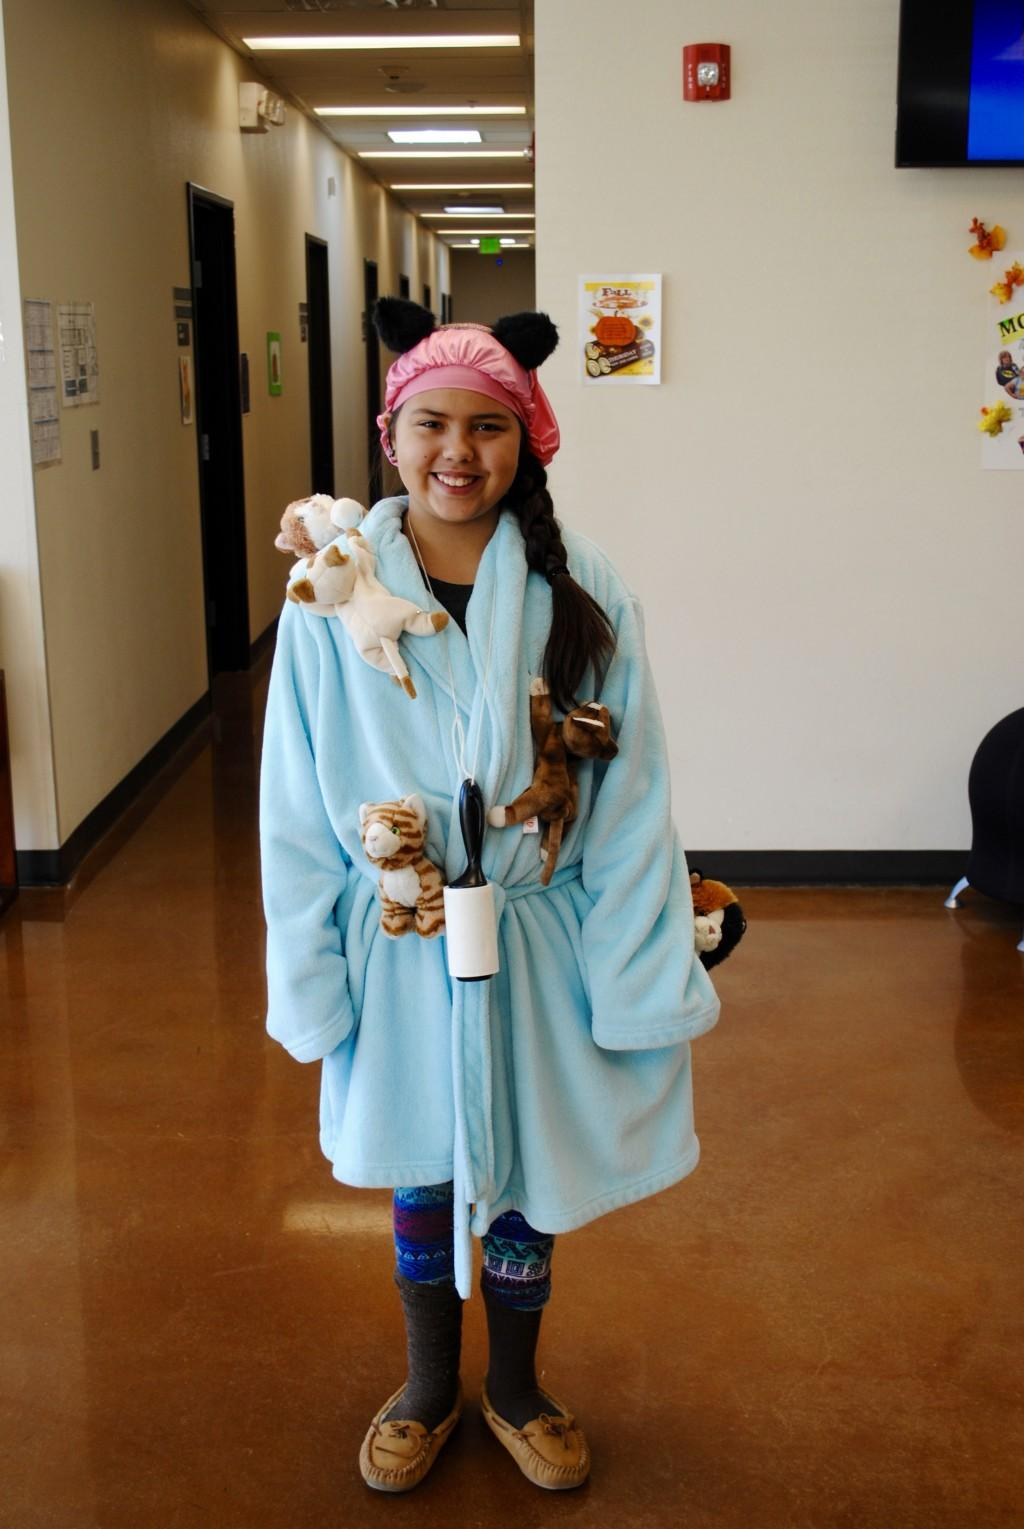 Student dressed as a cat lady